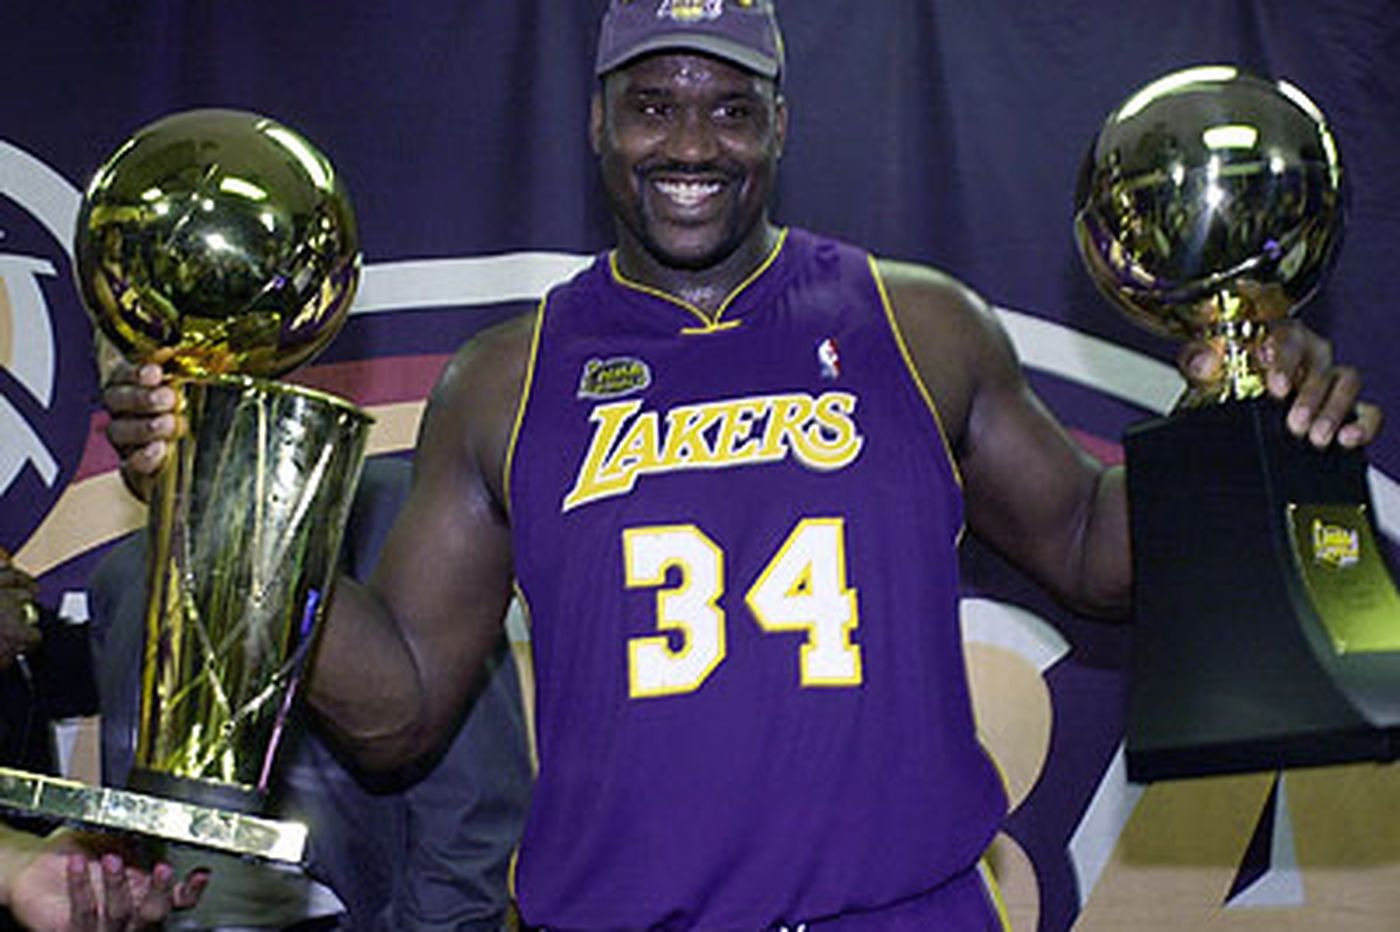 Shaq stayed too long, but what a force he was